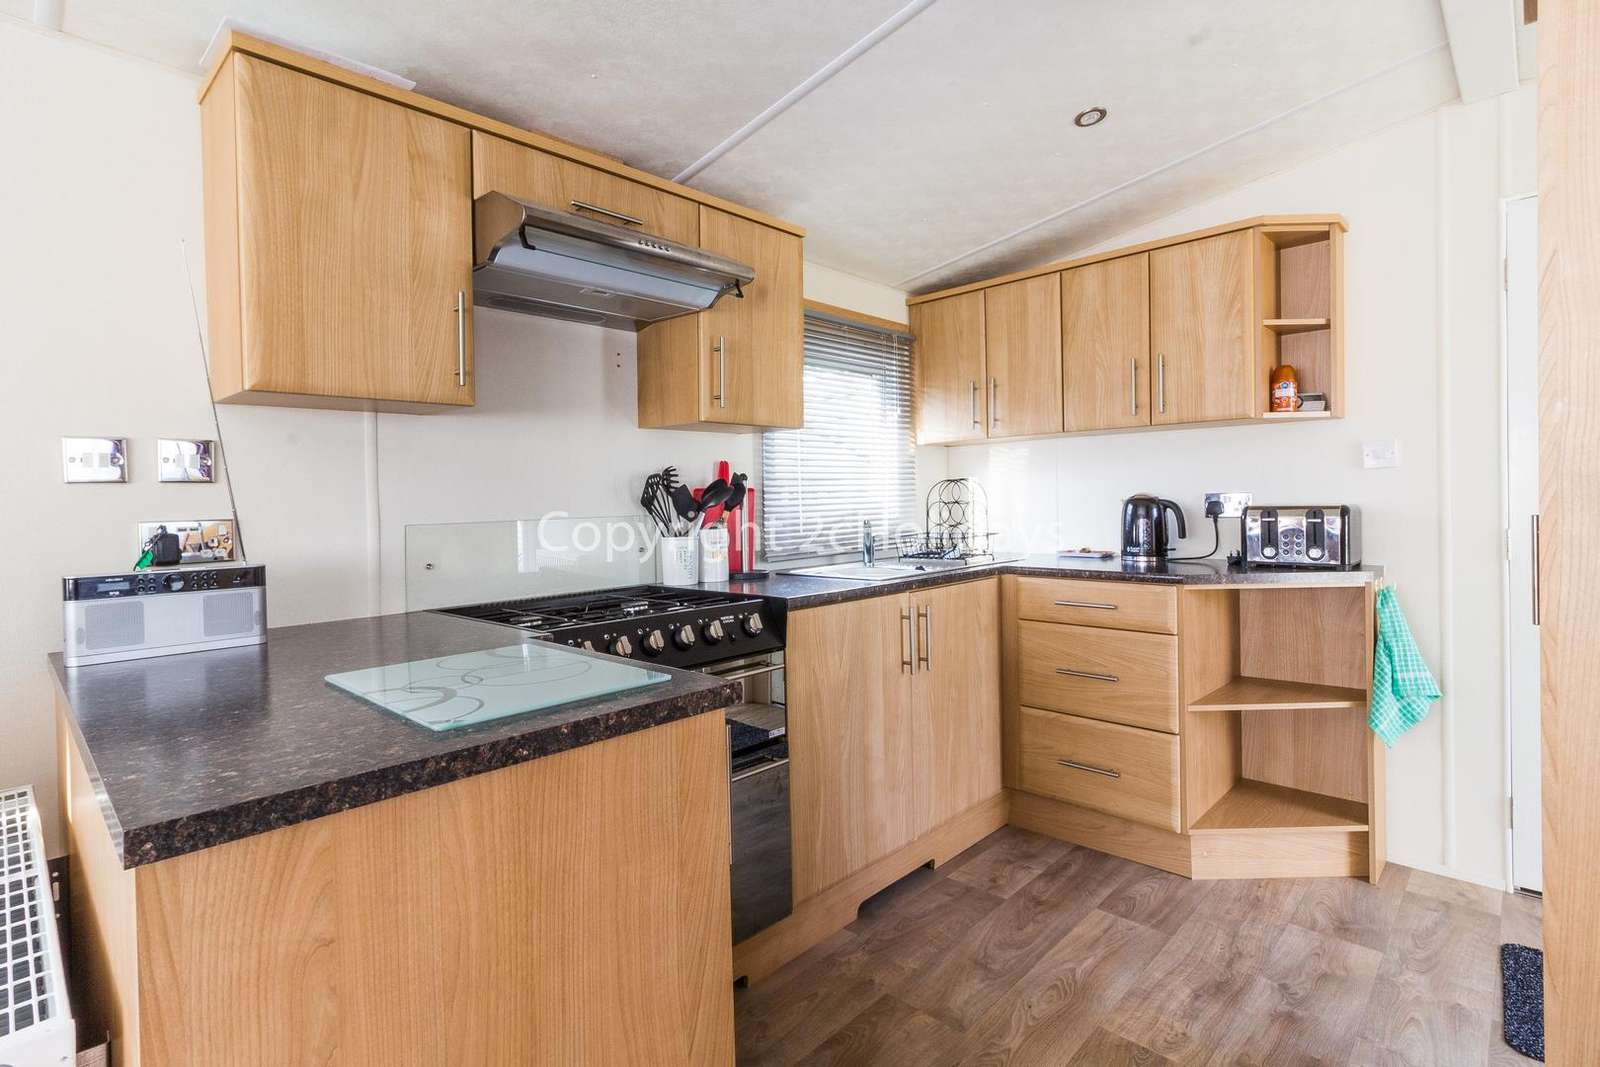 A fully equipped kitchen, perfect for self-catering holidays!